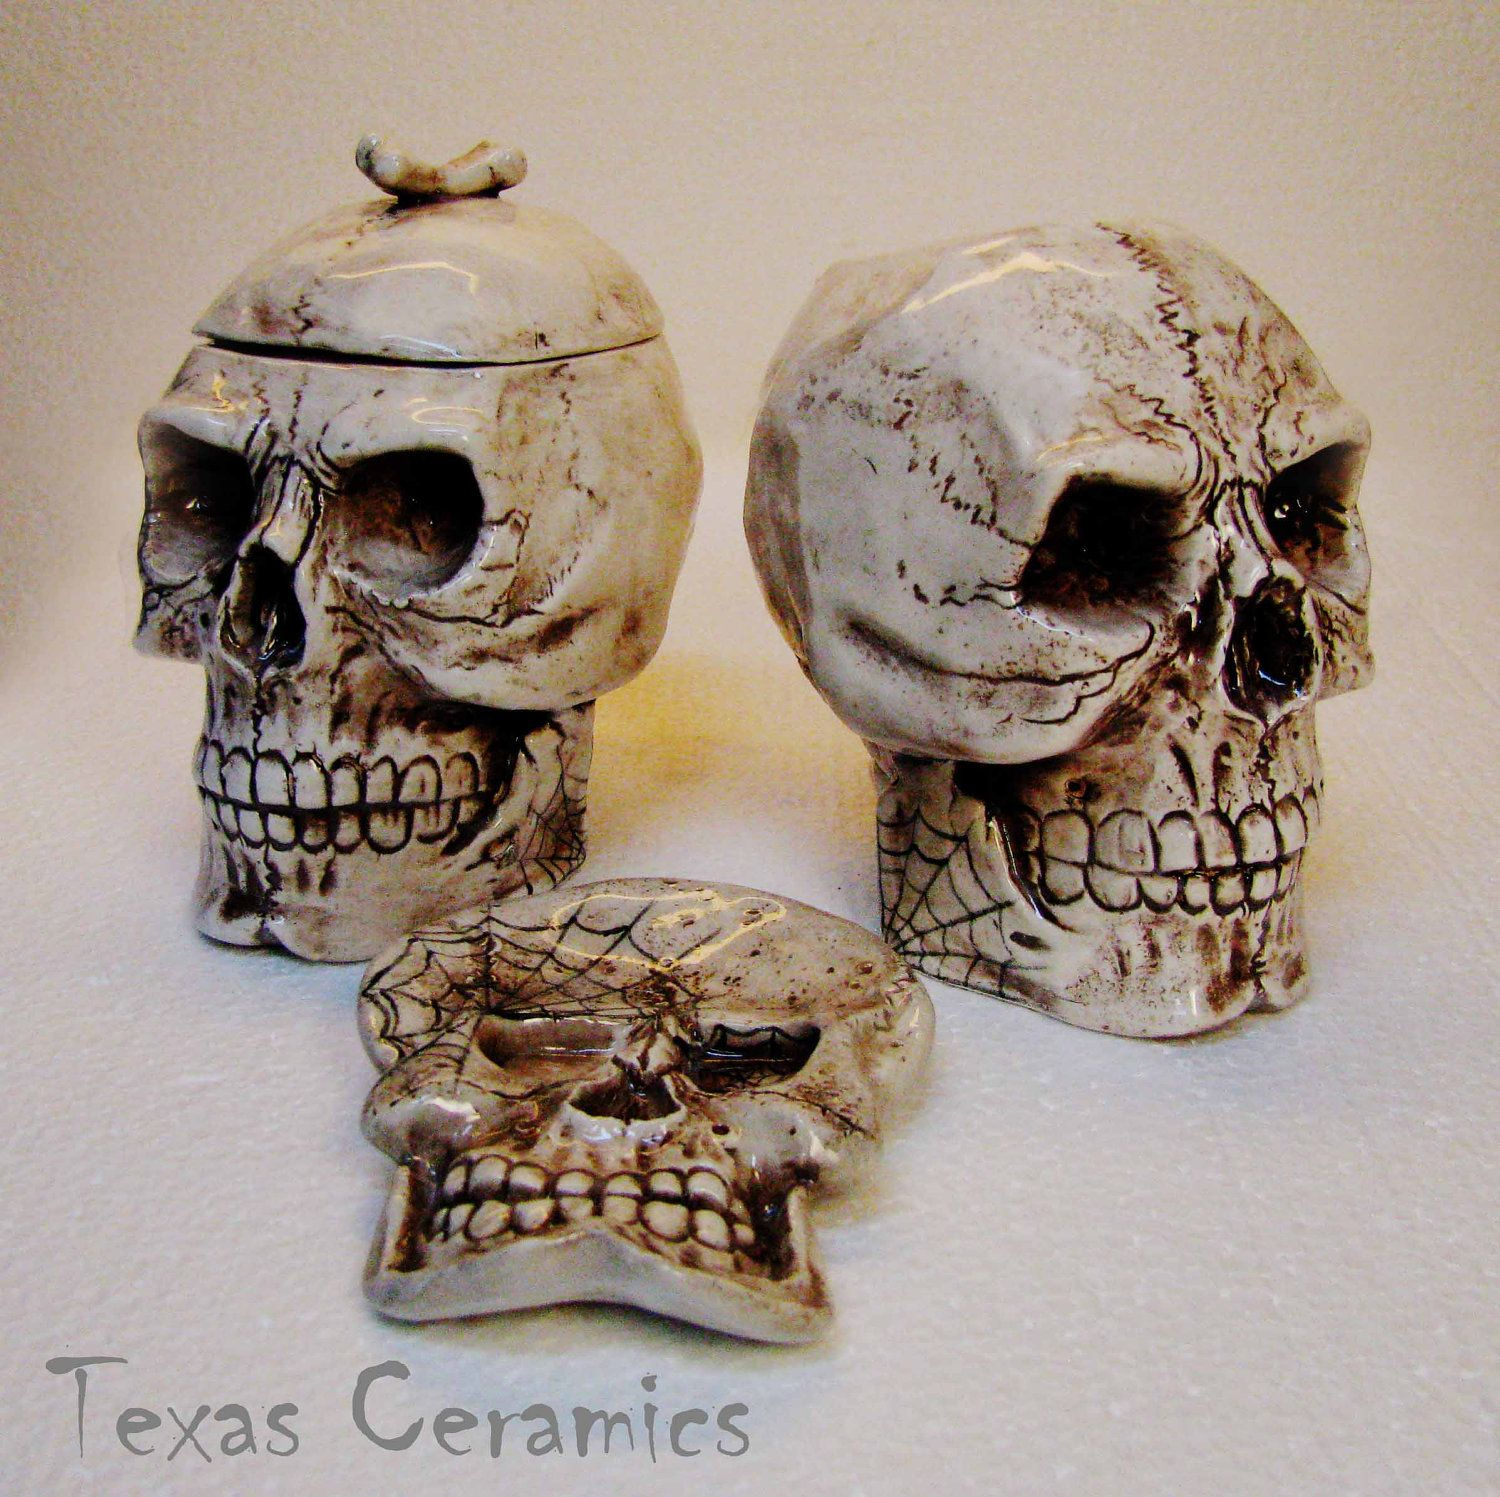 Aged Human Skull Ceramic Creamer U0026 Sugar Bowl With Skull Spoon Rest ...